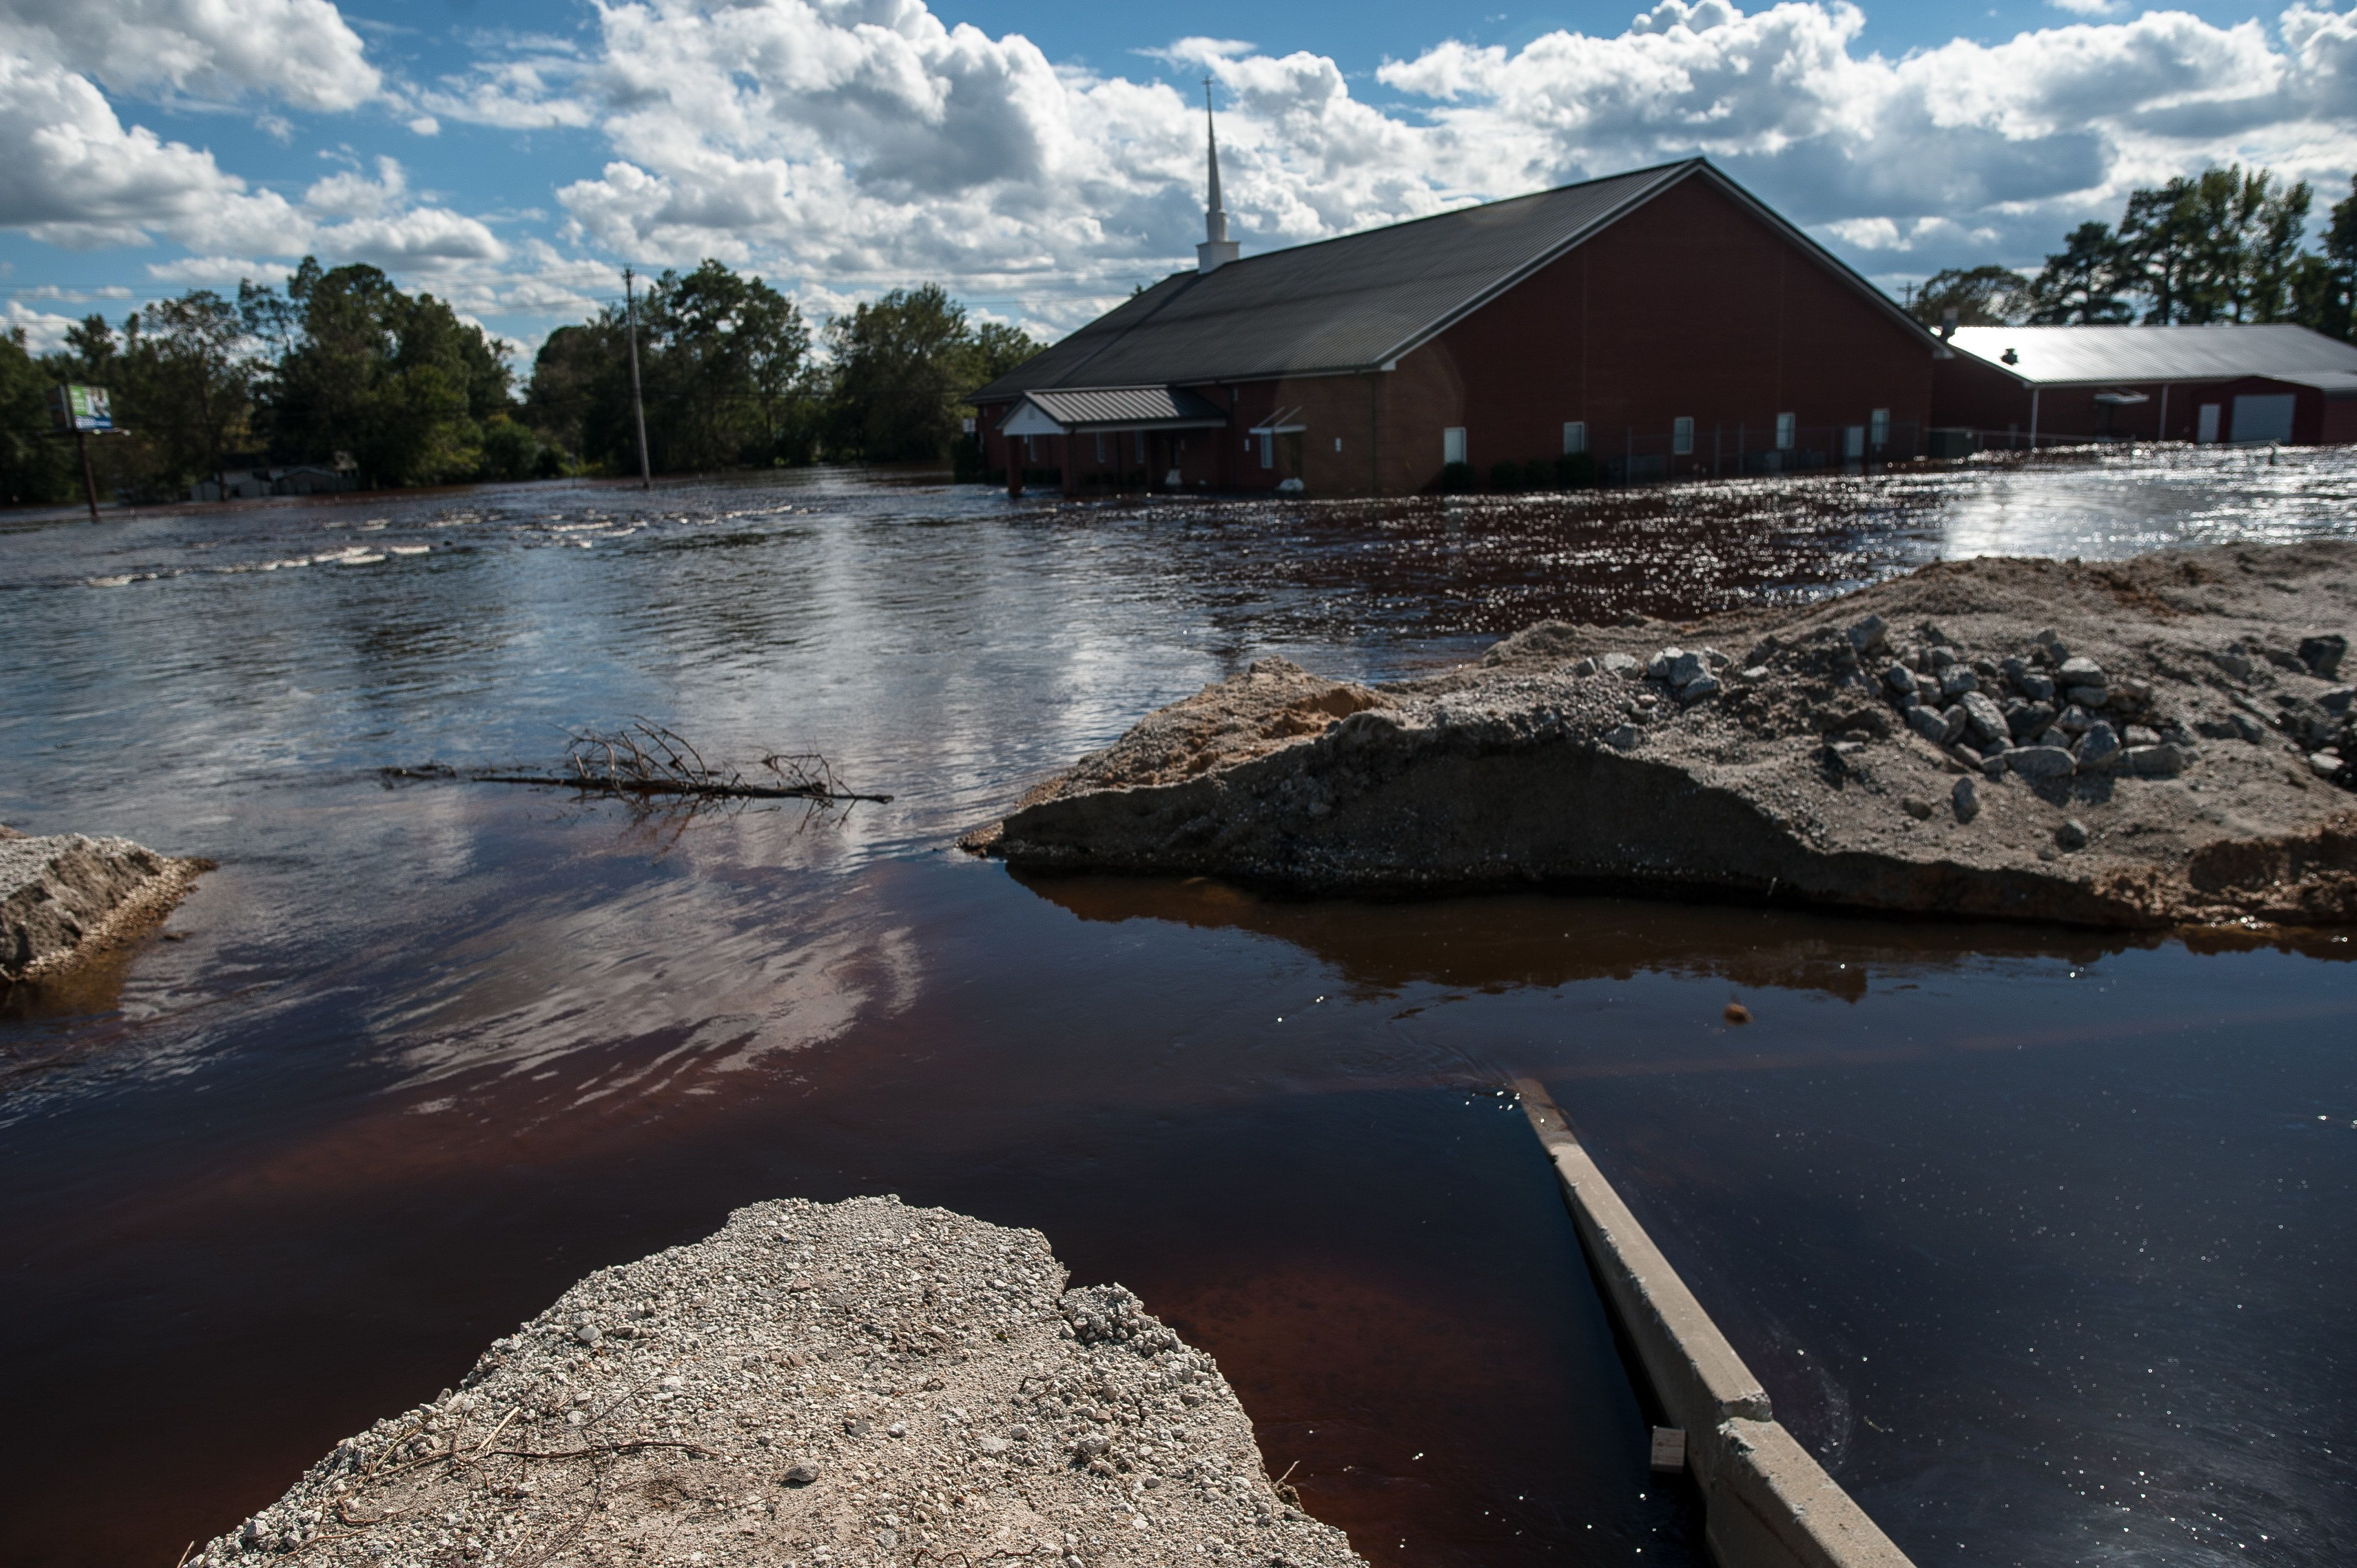 One of the two breaks in the temporary dirt and sandbag levee in Lumberton that failed on Sunday.